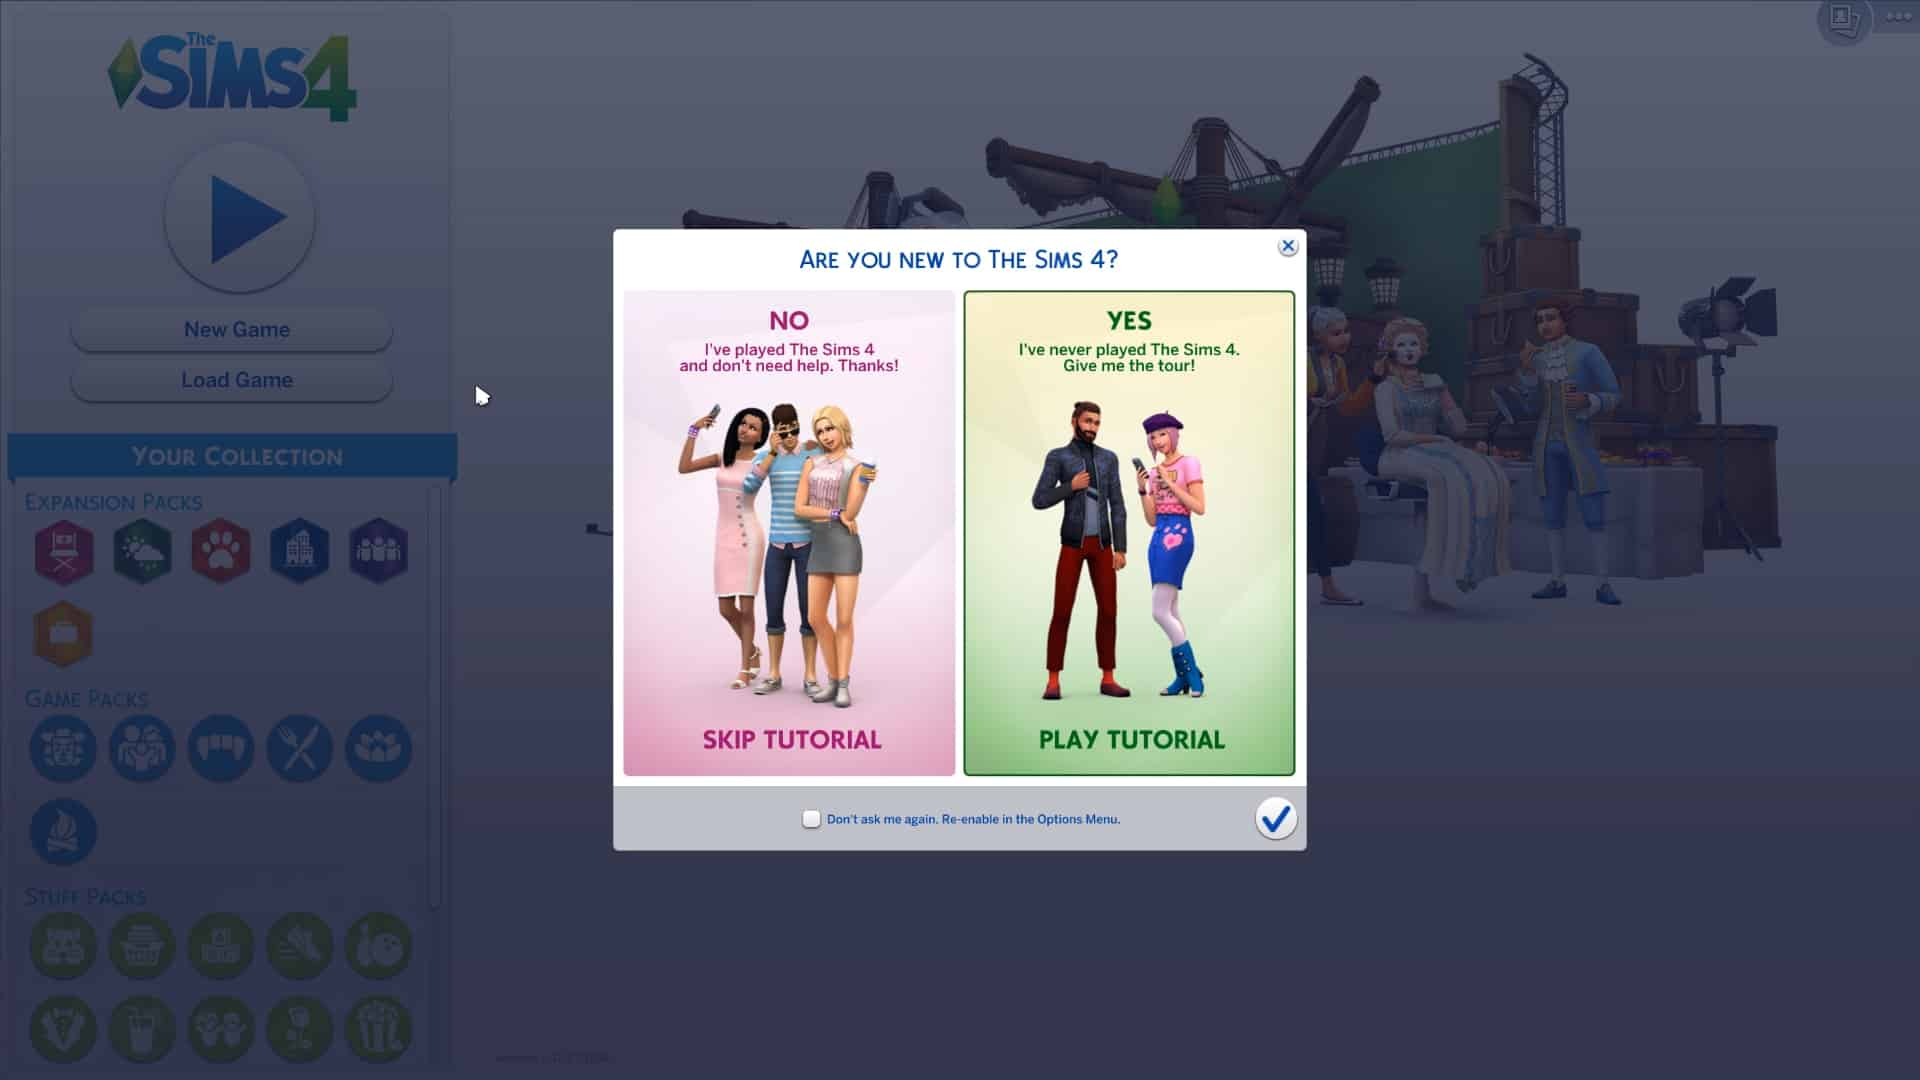 sims 4 patch notes october 2018